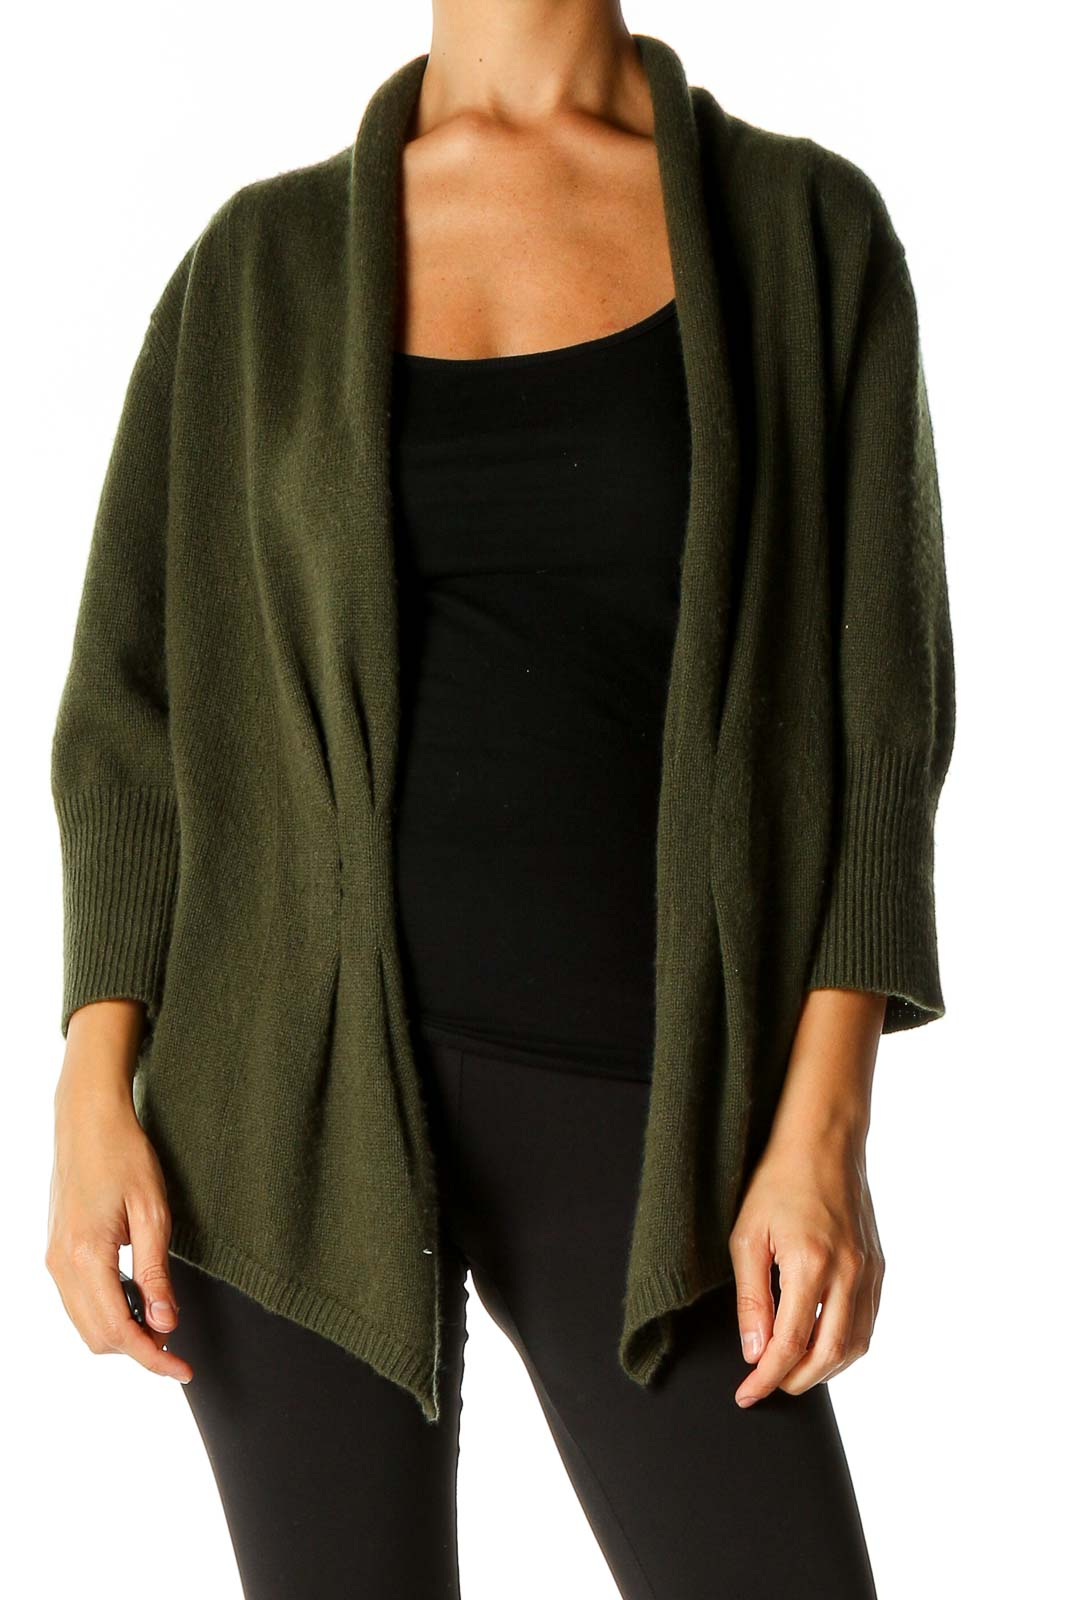 Green Cardigan Front